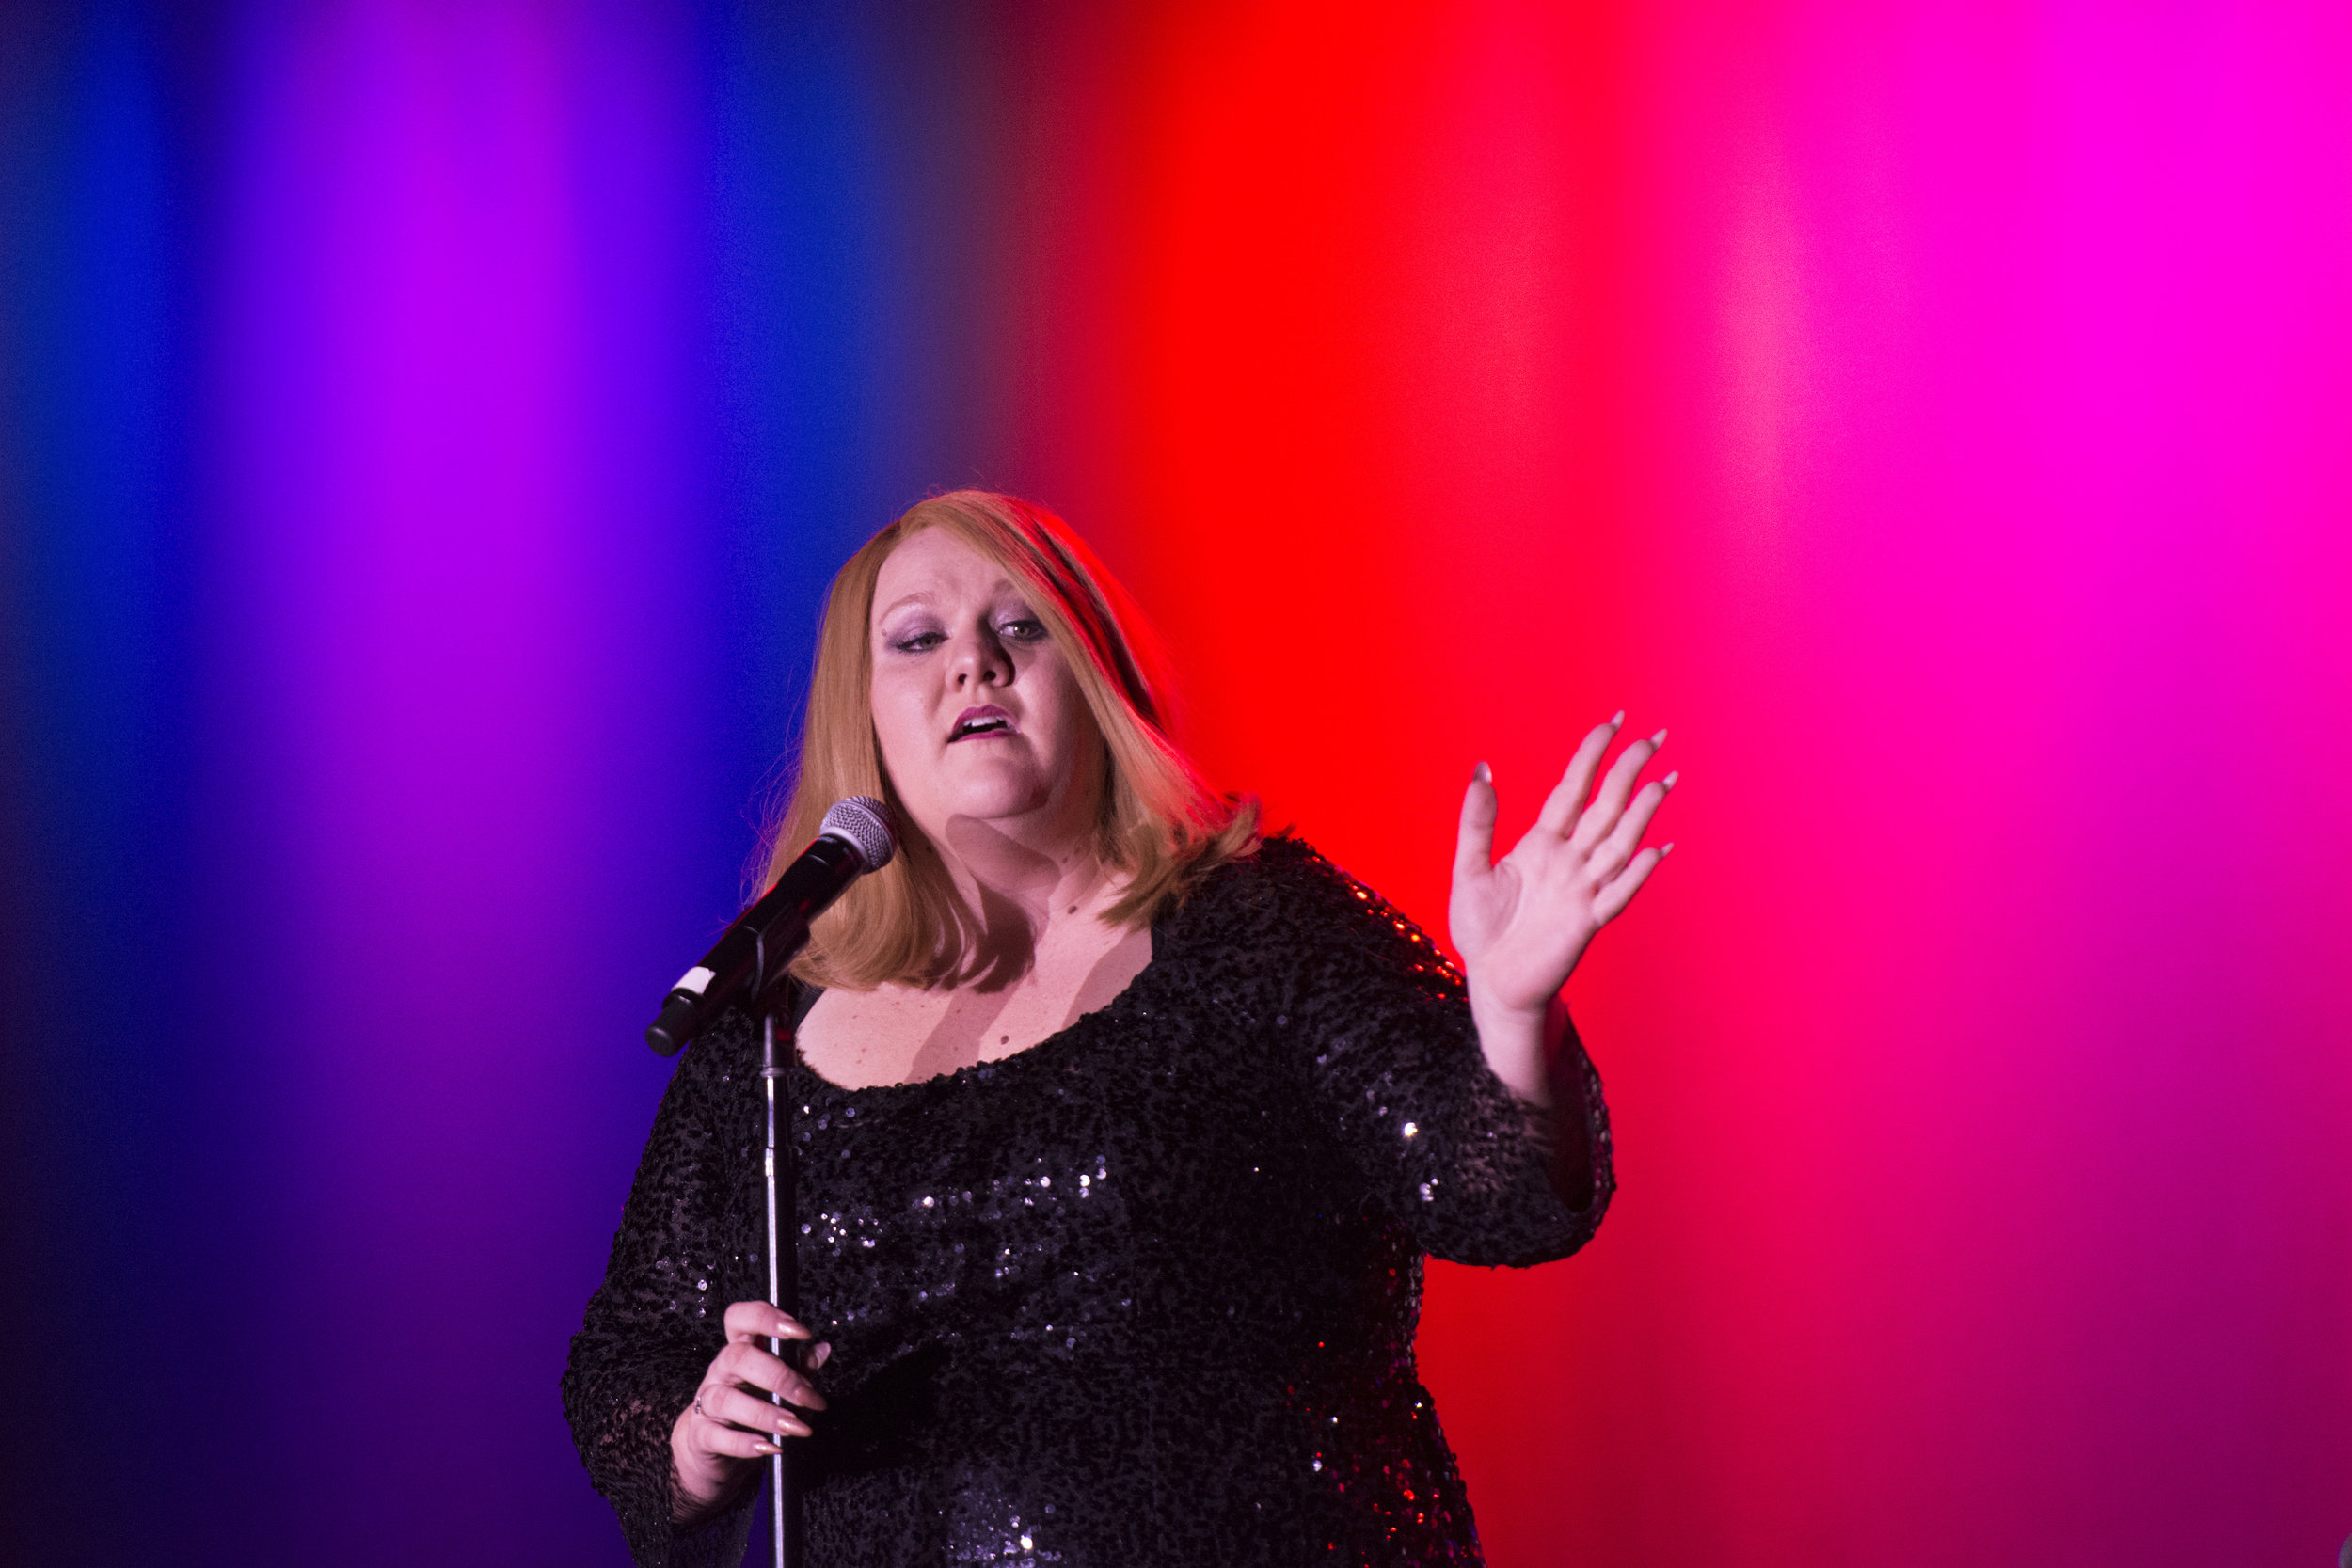 Adele impersonator Andrea Tyler performs during The Reel Awards at the Golden Nugget Hotel & Casino in Las Vegas, Nev., on February 20, 2017. The awards show is meant to be a humorous tribute to the Academy Awards. (Jason Ogulnik/Sipa USA)